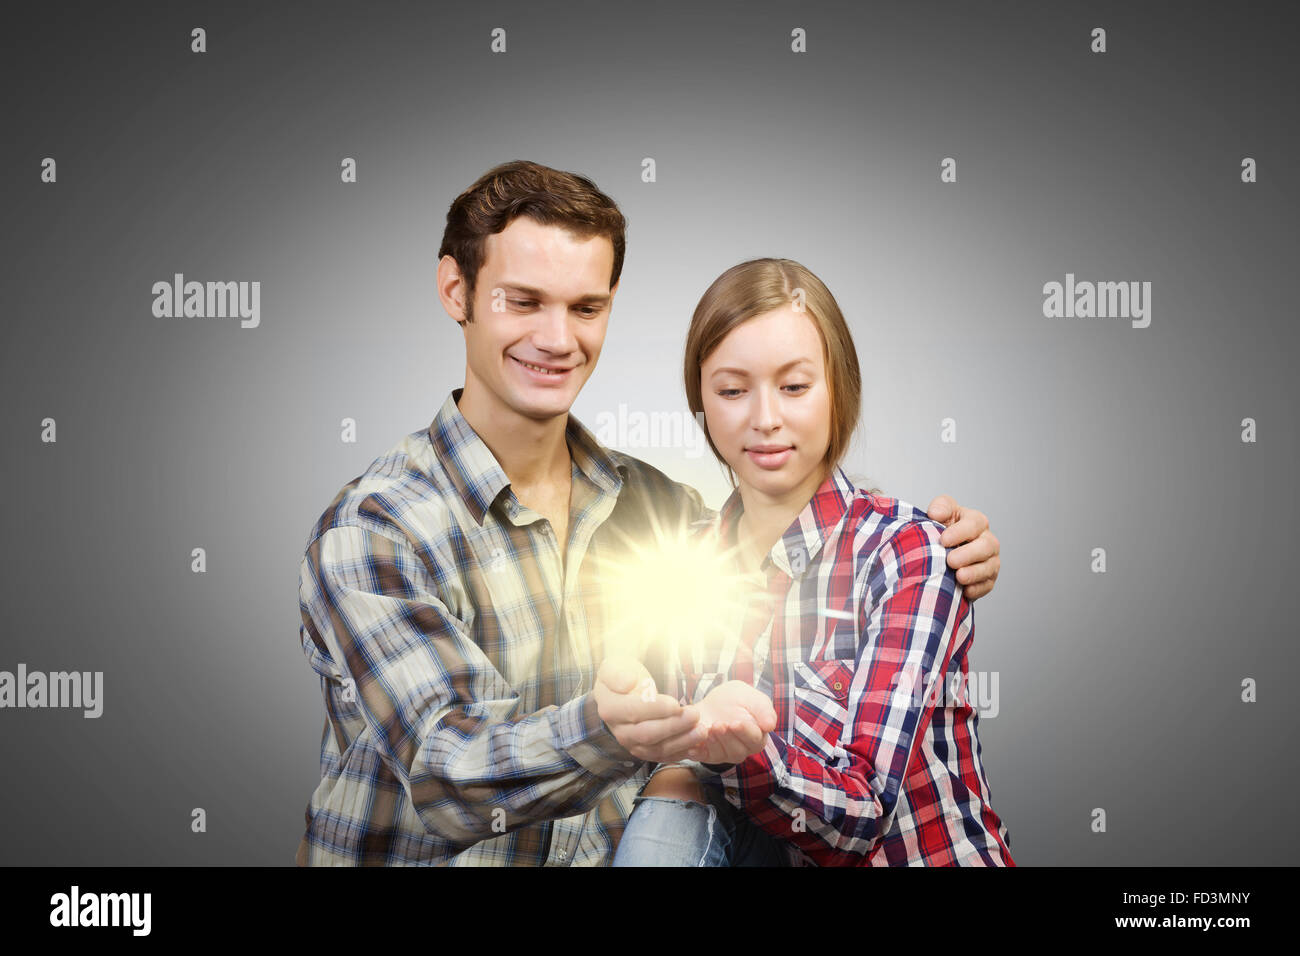 Young happy couple hugging each other tenderly - Stock Image